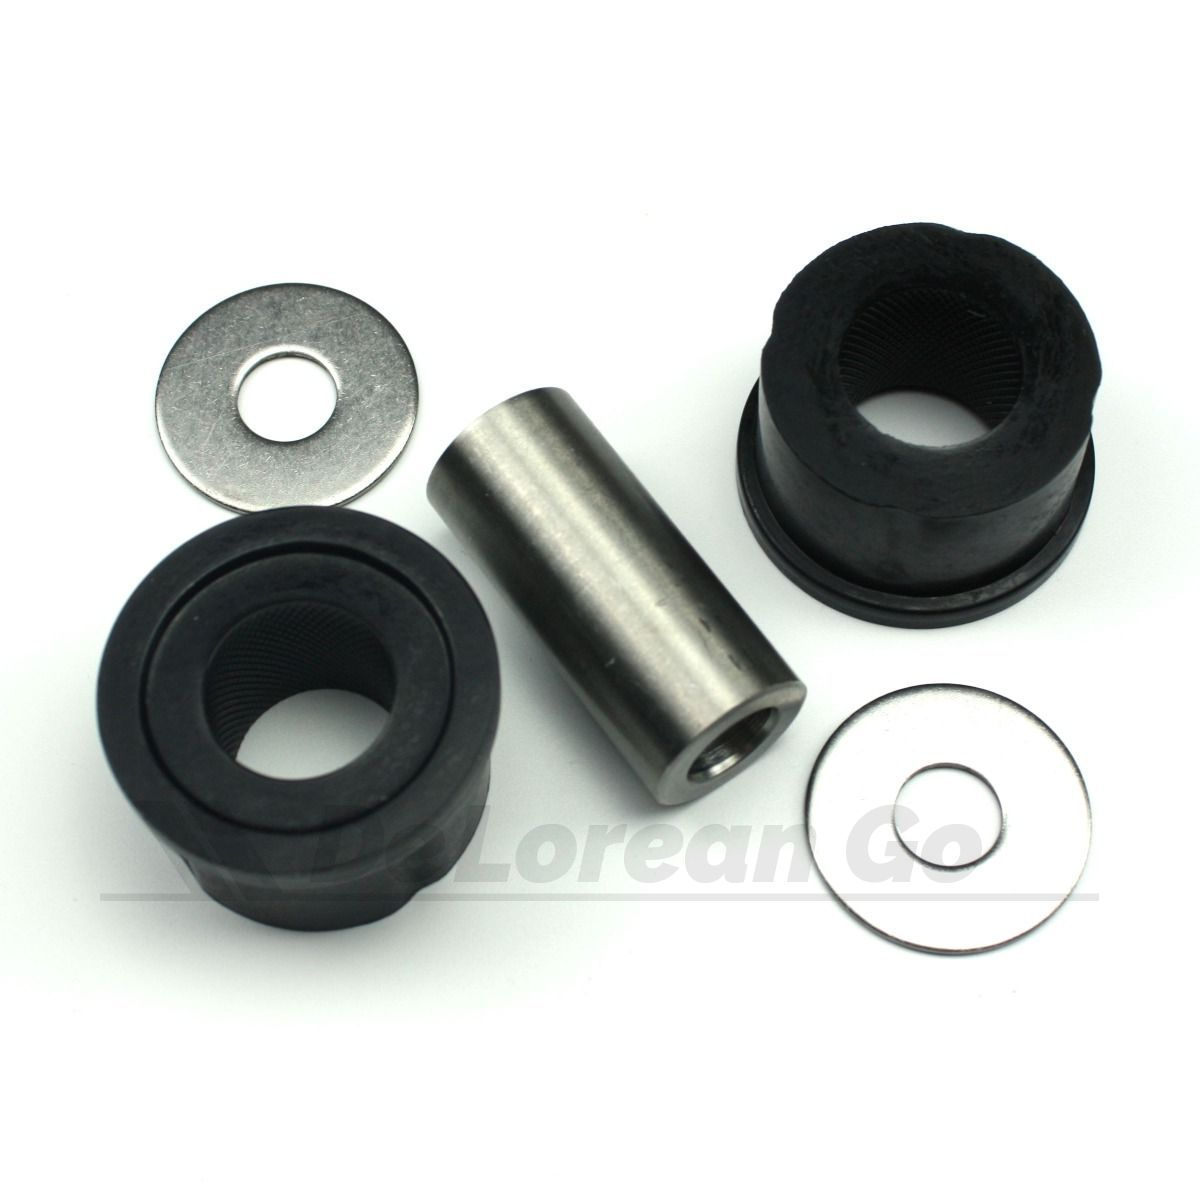 Polyurethane Suspension Bushings >> Polyurethane Rear Suspension Bushing Delorean Parts Usa